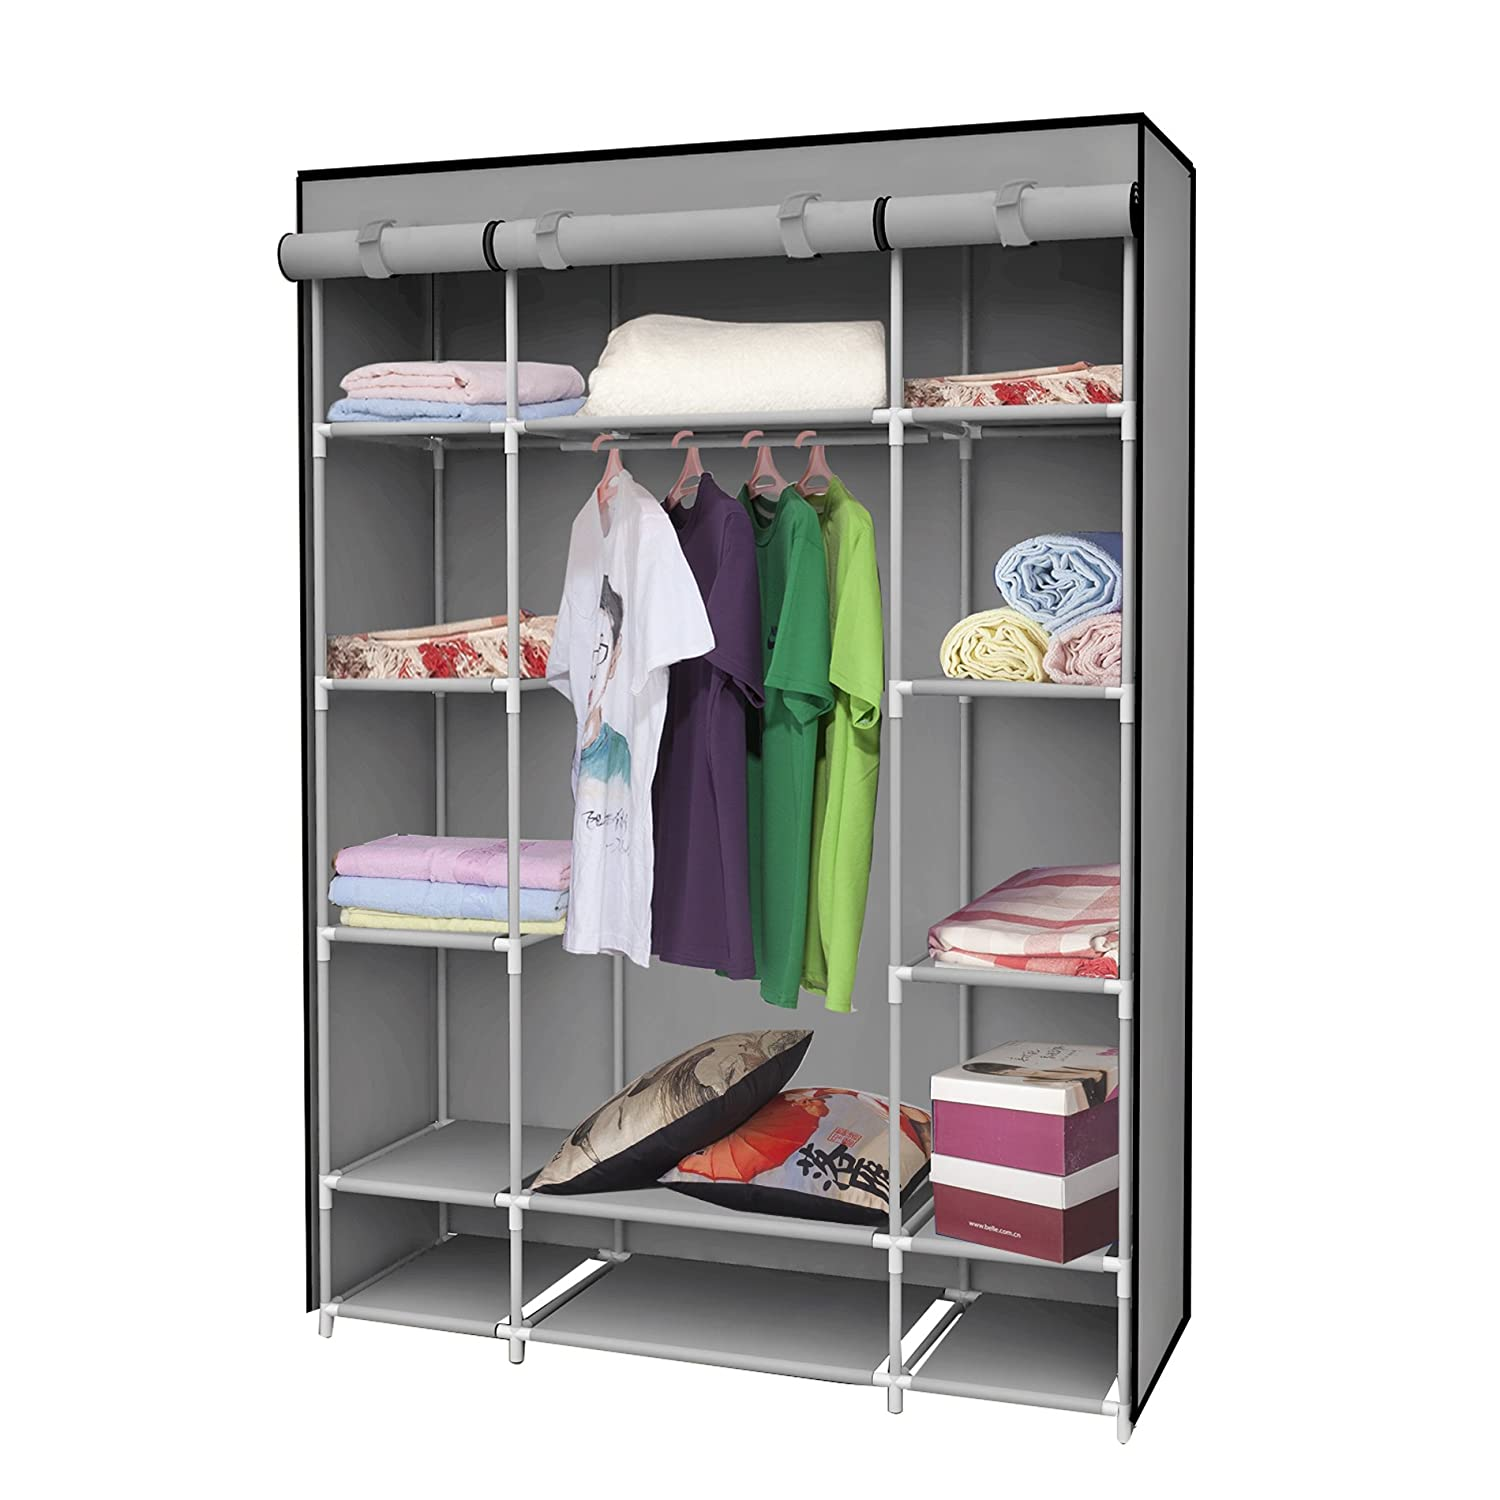 almirah new blue index ft cupboard portable storage foldable wardrobe closet